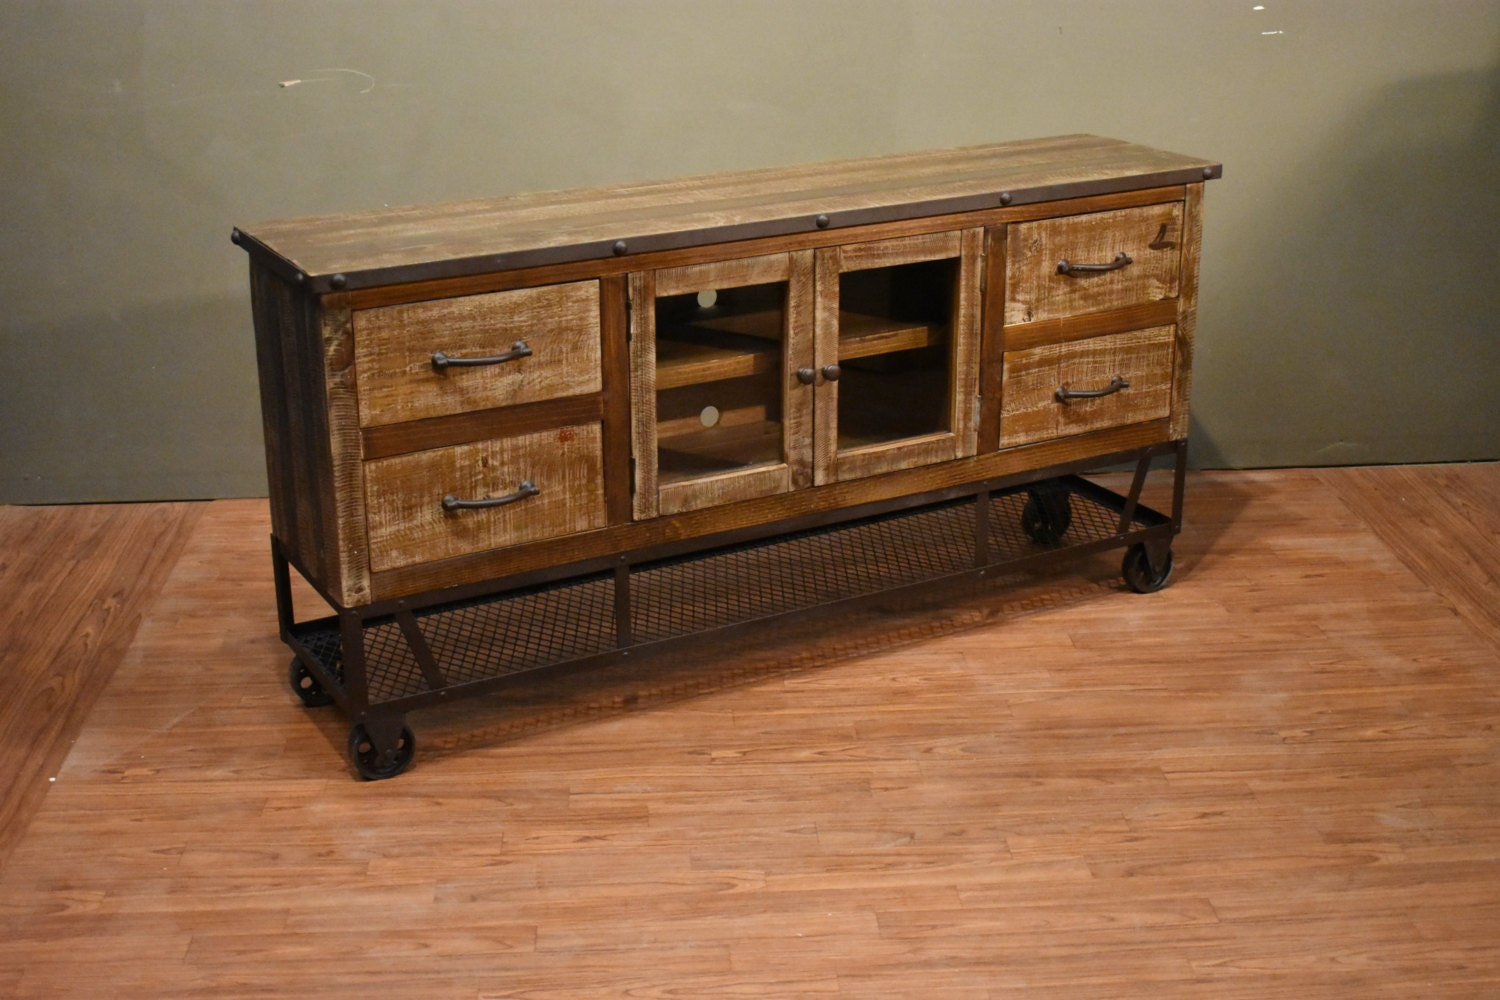 Industrial Rustic Reclaimed Wood 65 Inch Tv Stand Media